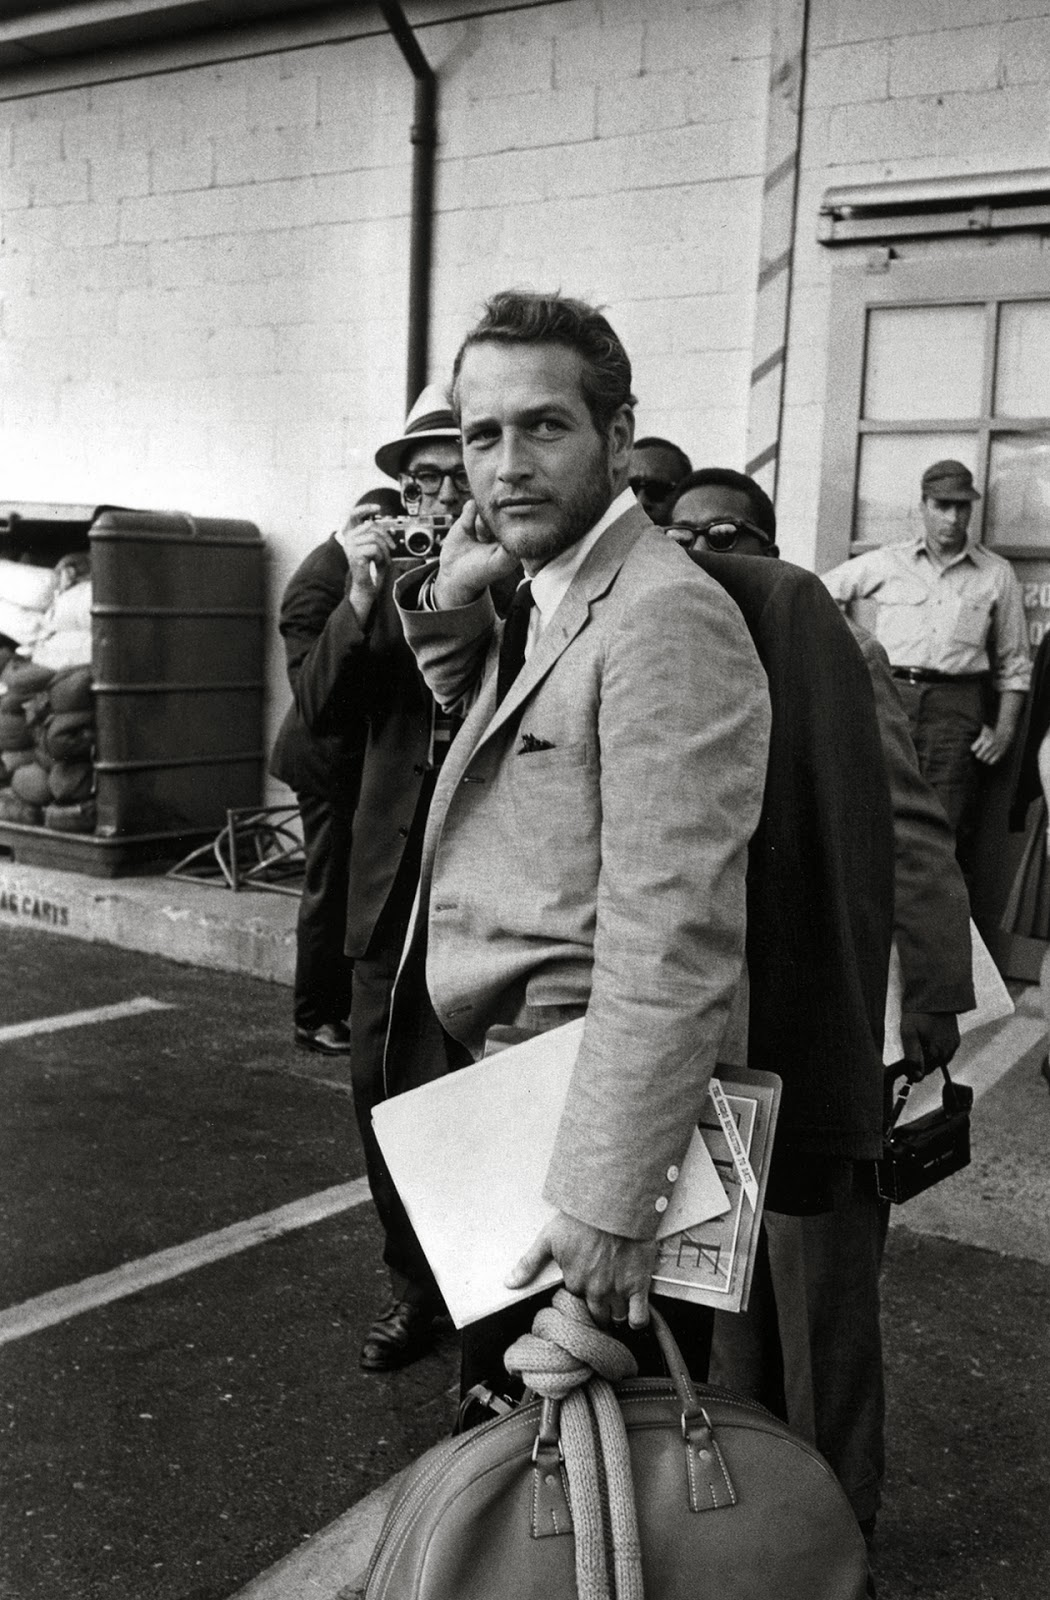 Paul Newman in a suit